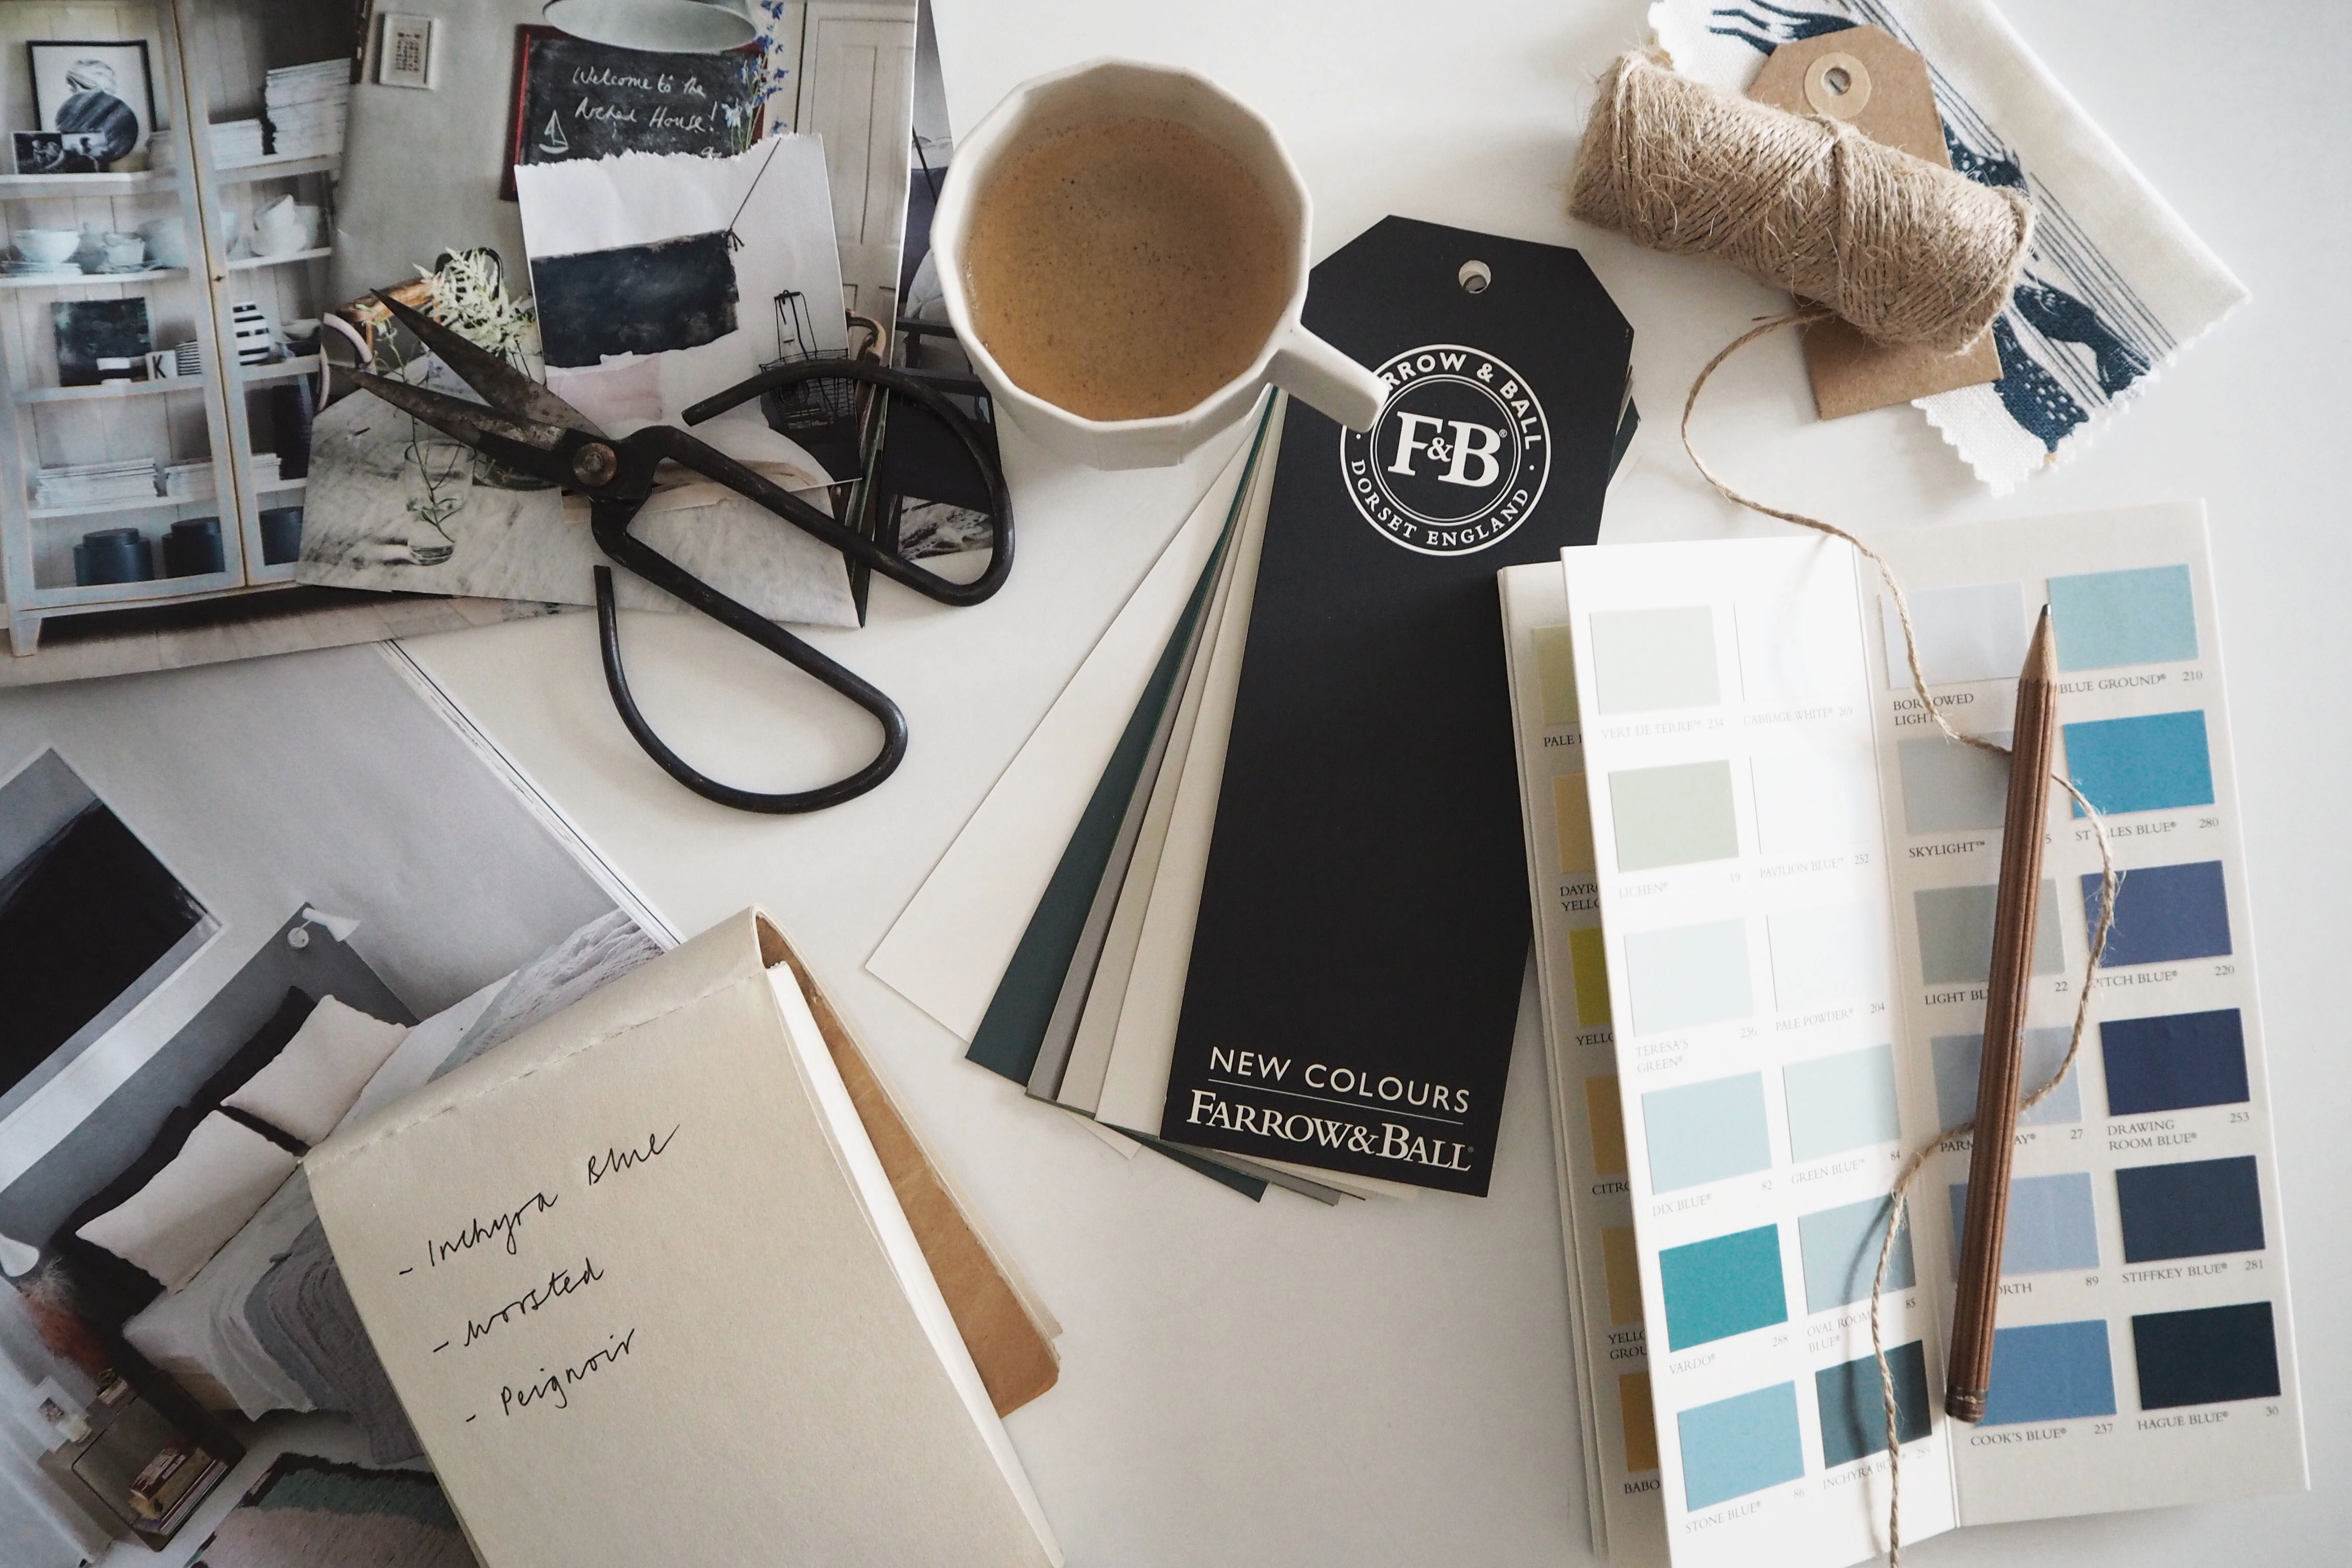 Farrow & Ball new colours 2016